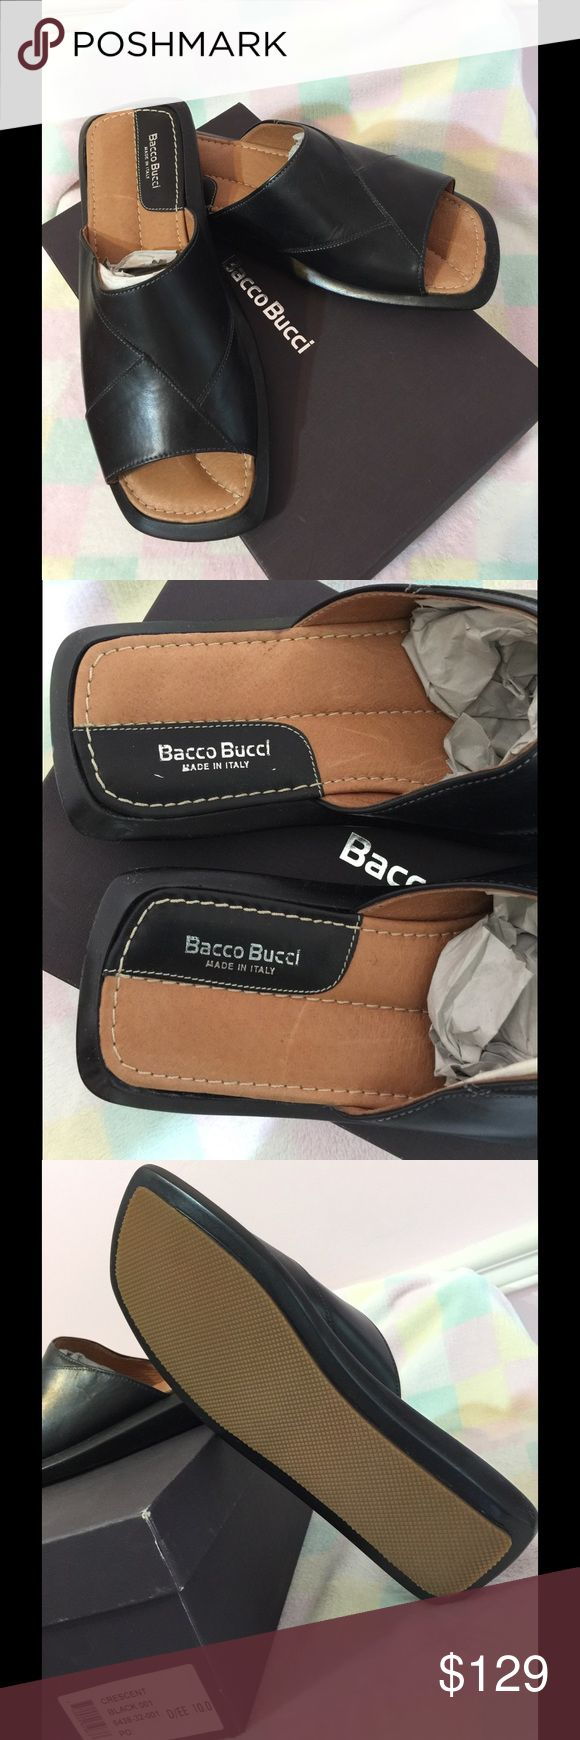 BACCO BUCCI MEN's Crescent style, LEATHER Sandals Original in the box, NEW!!!! Bacco Bucci Shoes Sandals